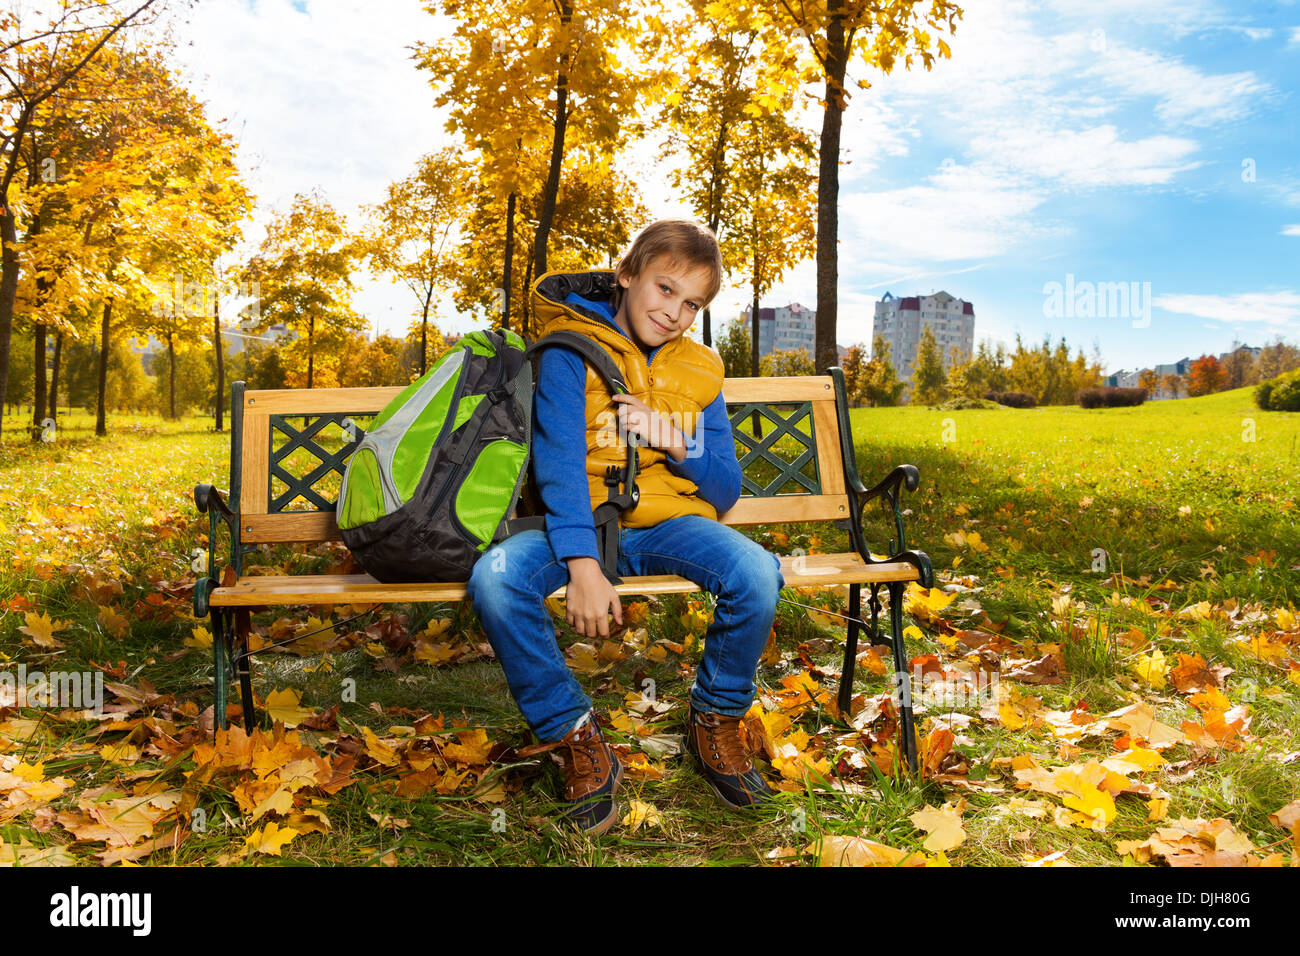 86f91cf22e1d Happy 10 years old boy sitting on the bench with backpack after school with  backpack on